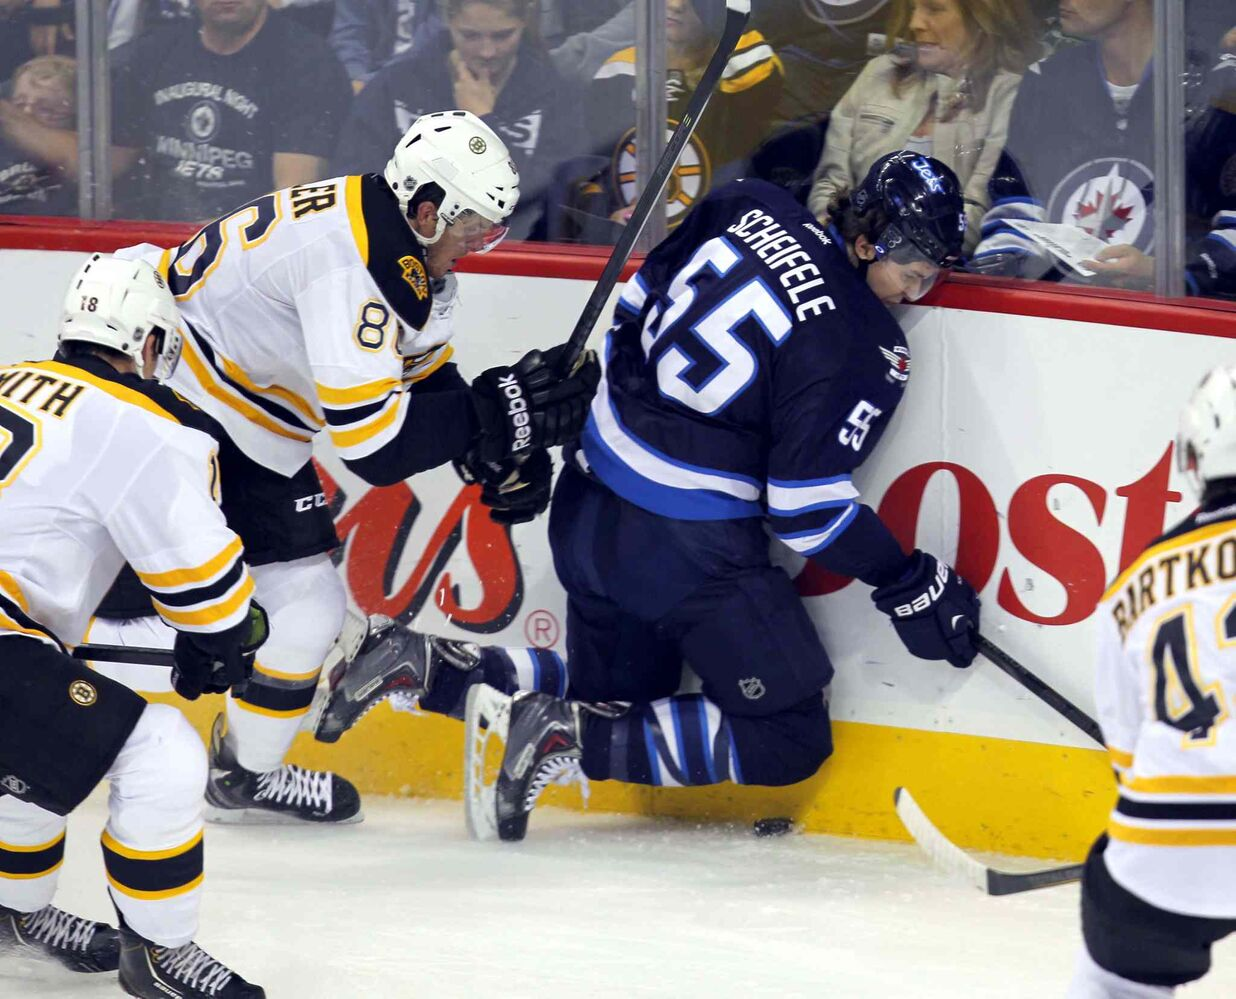 Mark Scheifele of the Winnipeg Jets goes hard into the boards in the first period. (BORIS MINKEVICH / WINNIPEG FREE PRESS)